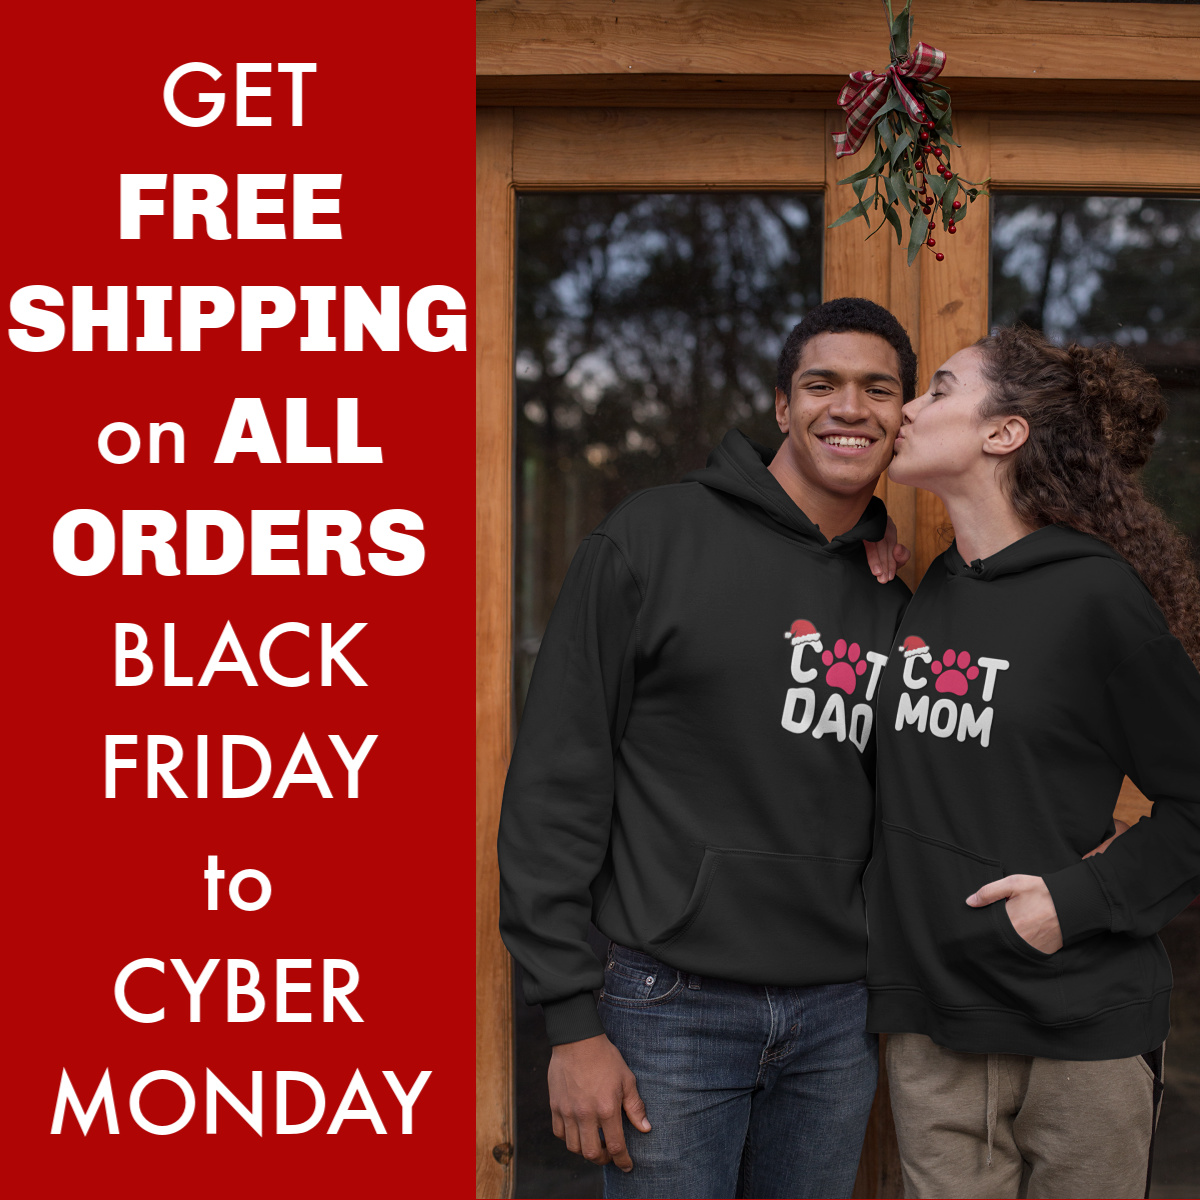 BLACK FRIDAY & CYBER MONDAY DEAL: Get FREE Shipping on ALL Orders at Cat Dog Gifts!